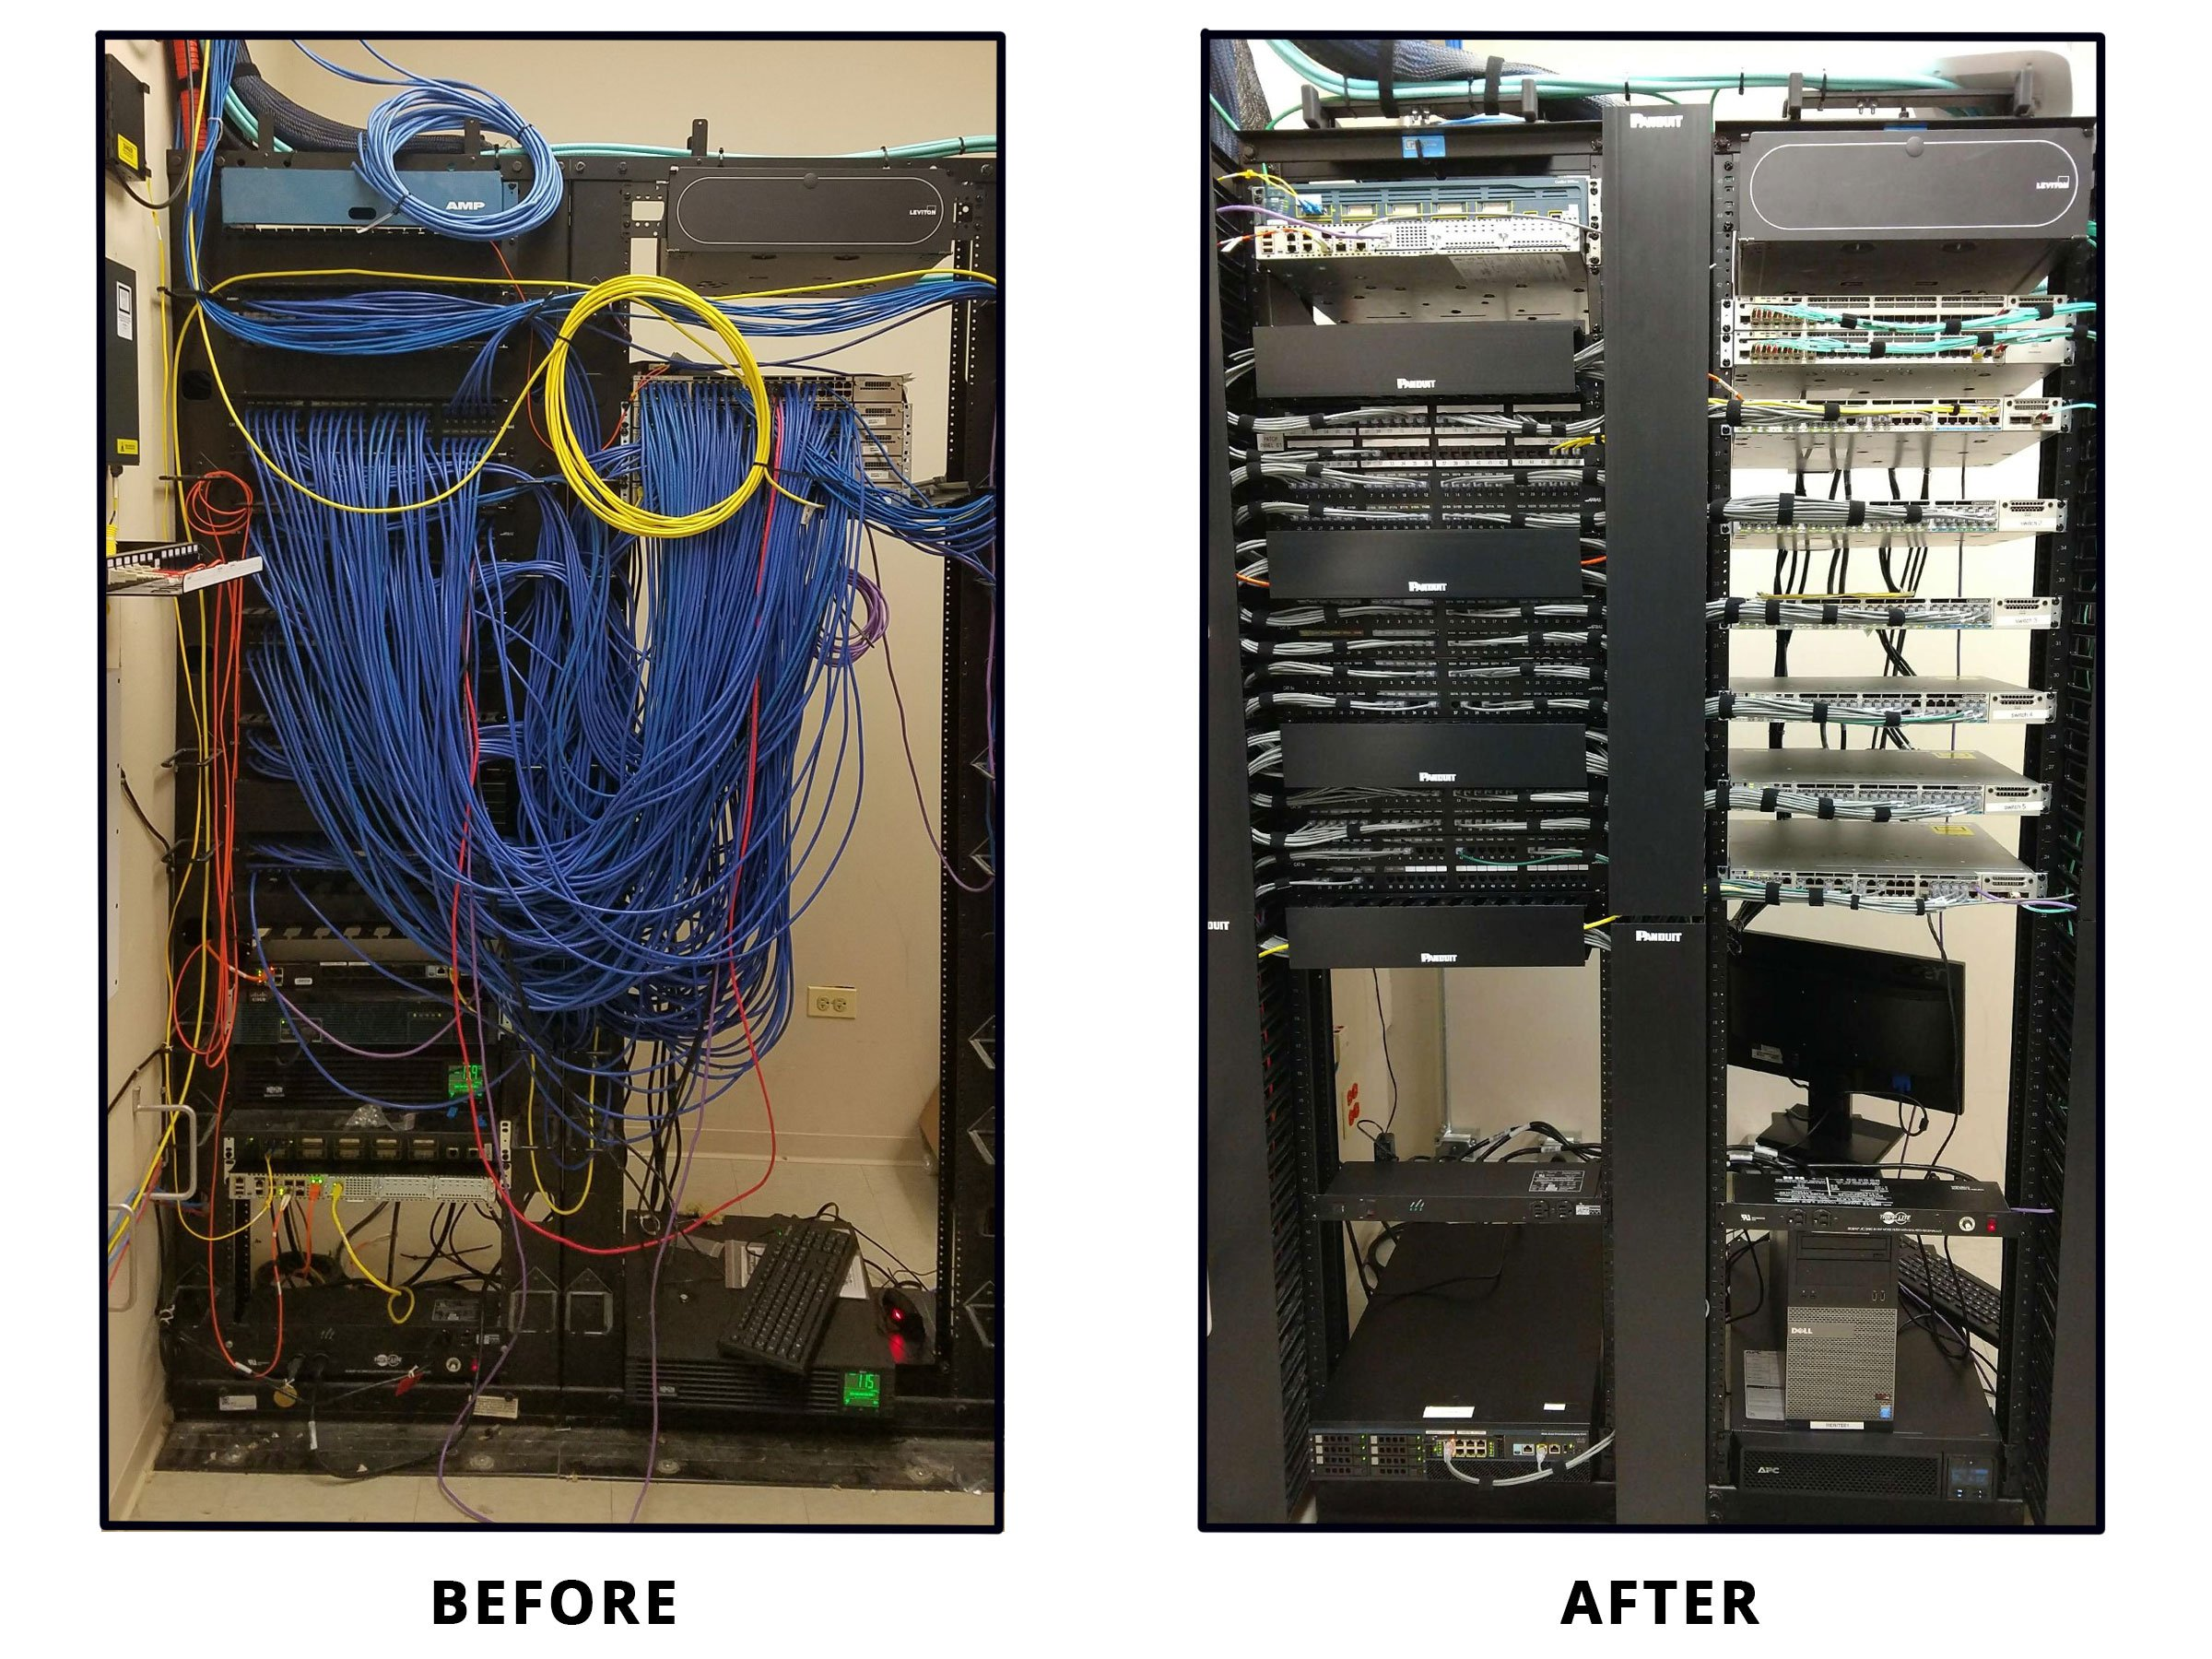 photo of before and after network wiring center cleanup